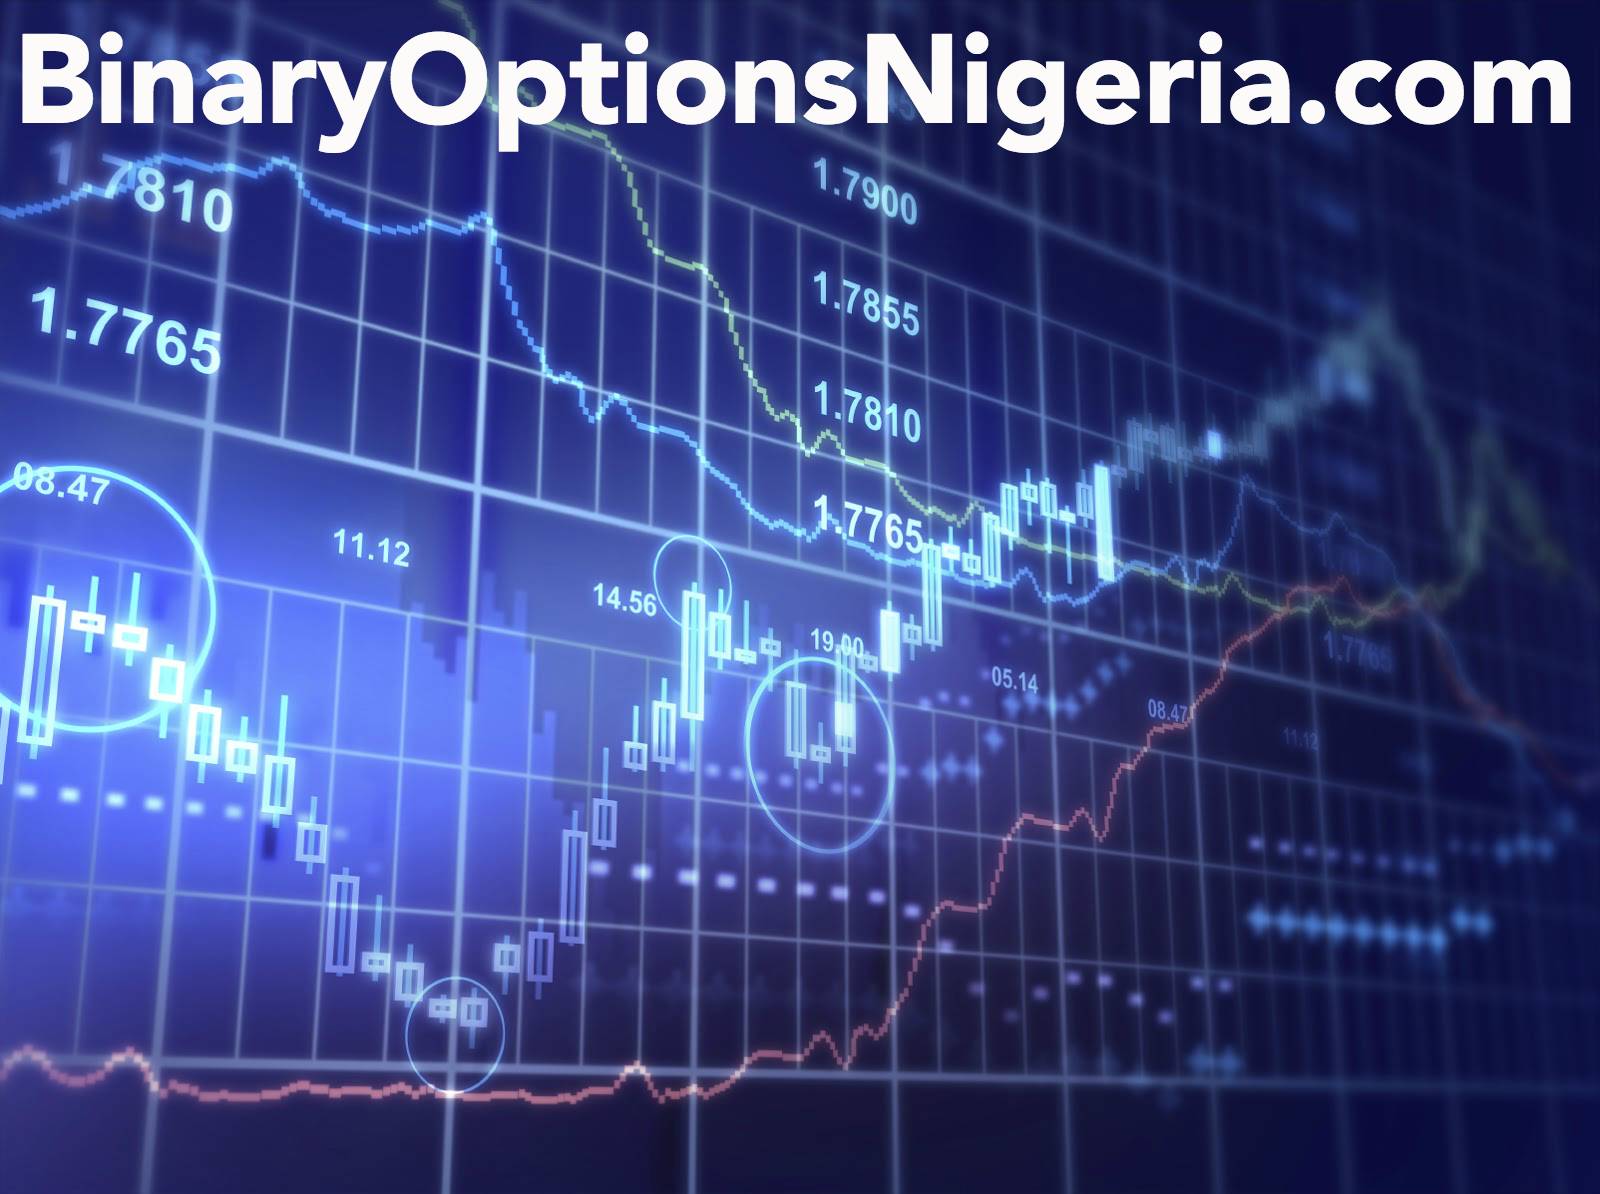 Binary option traders in nigeria